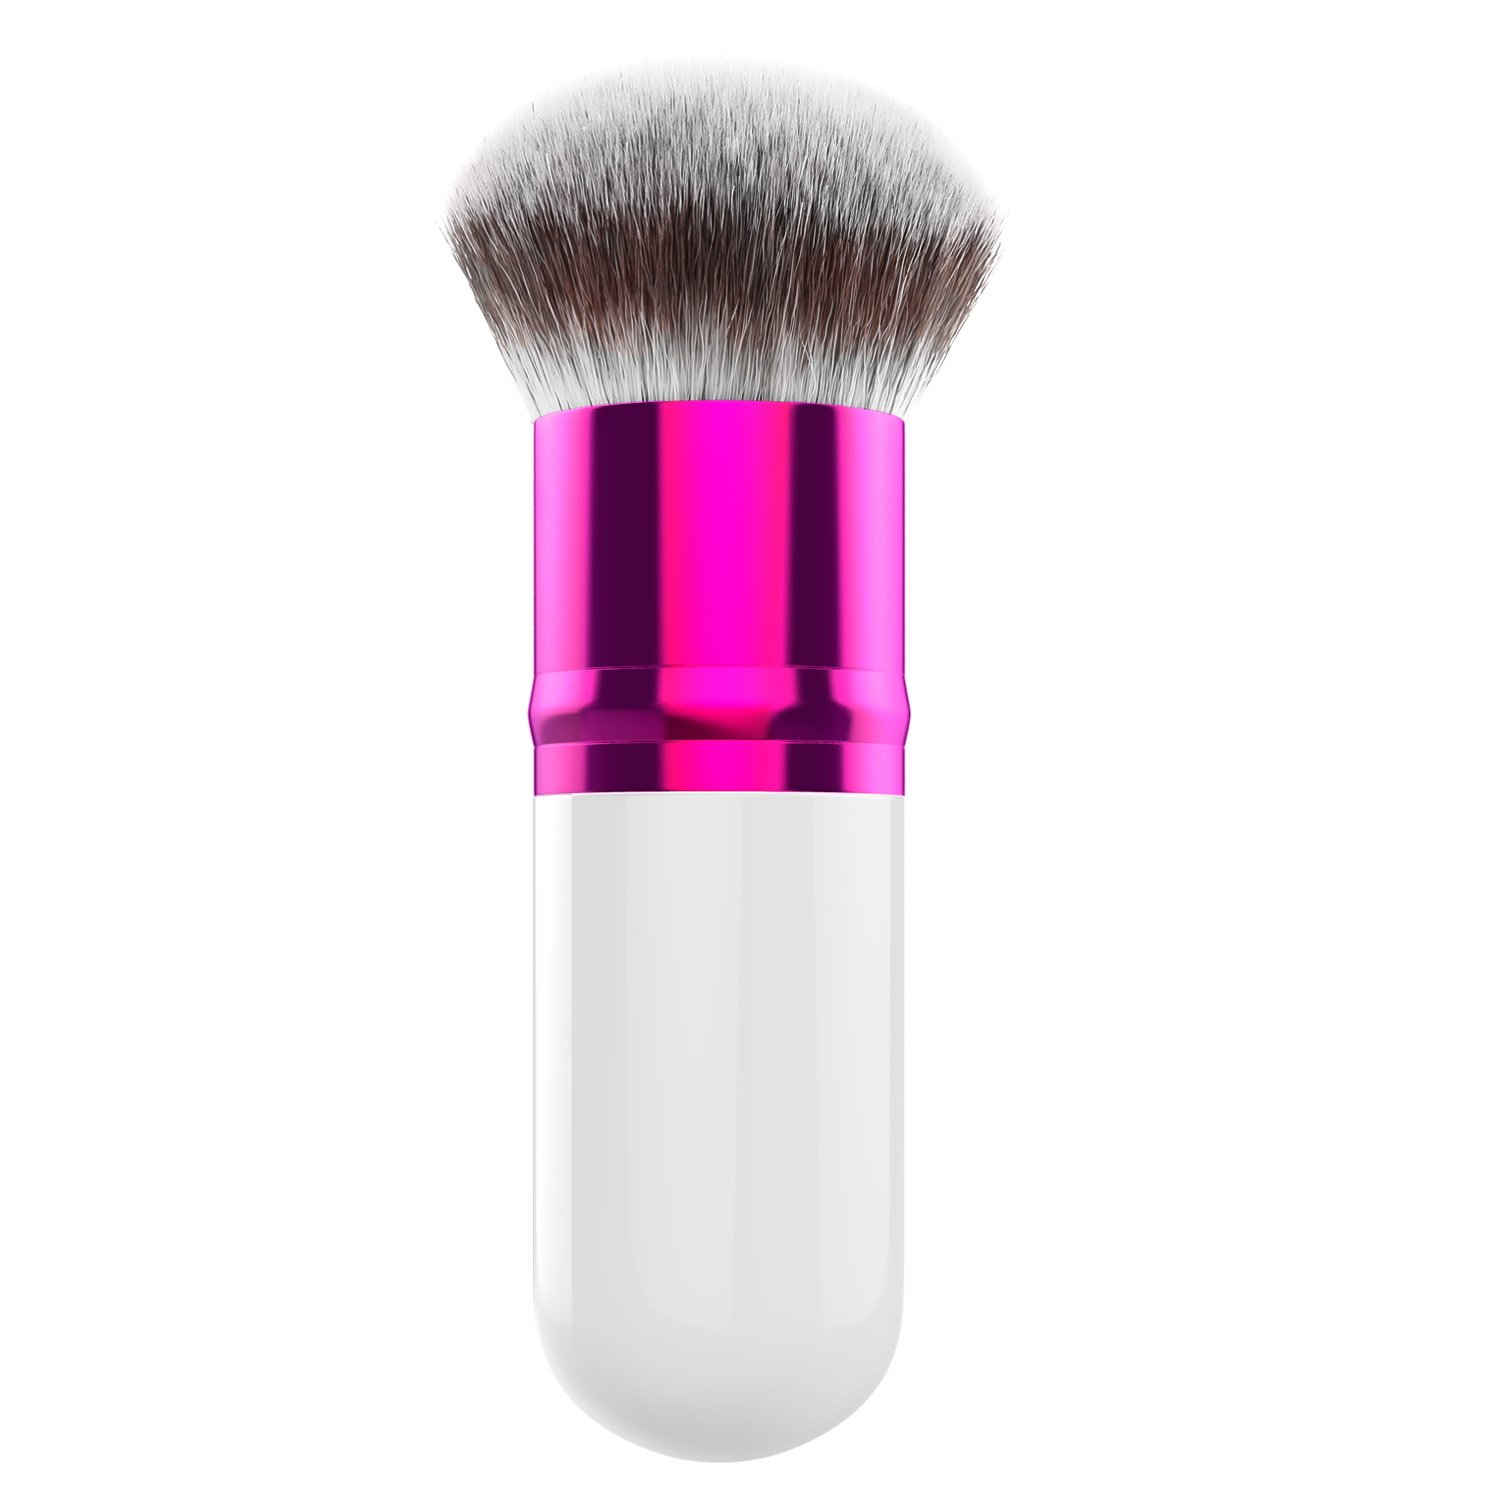 Luxspire Professional Makeup Brush, Single Handle Large Round Head Soft Foundation Face Powder Brush BB Cream Brush Cosmetics Make Up Tool, White & Rose Red